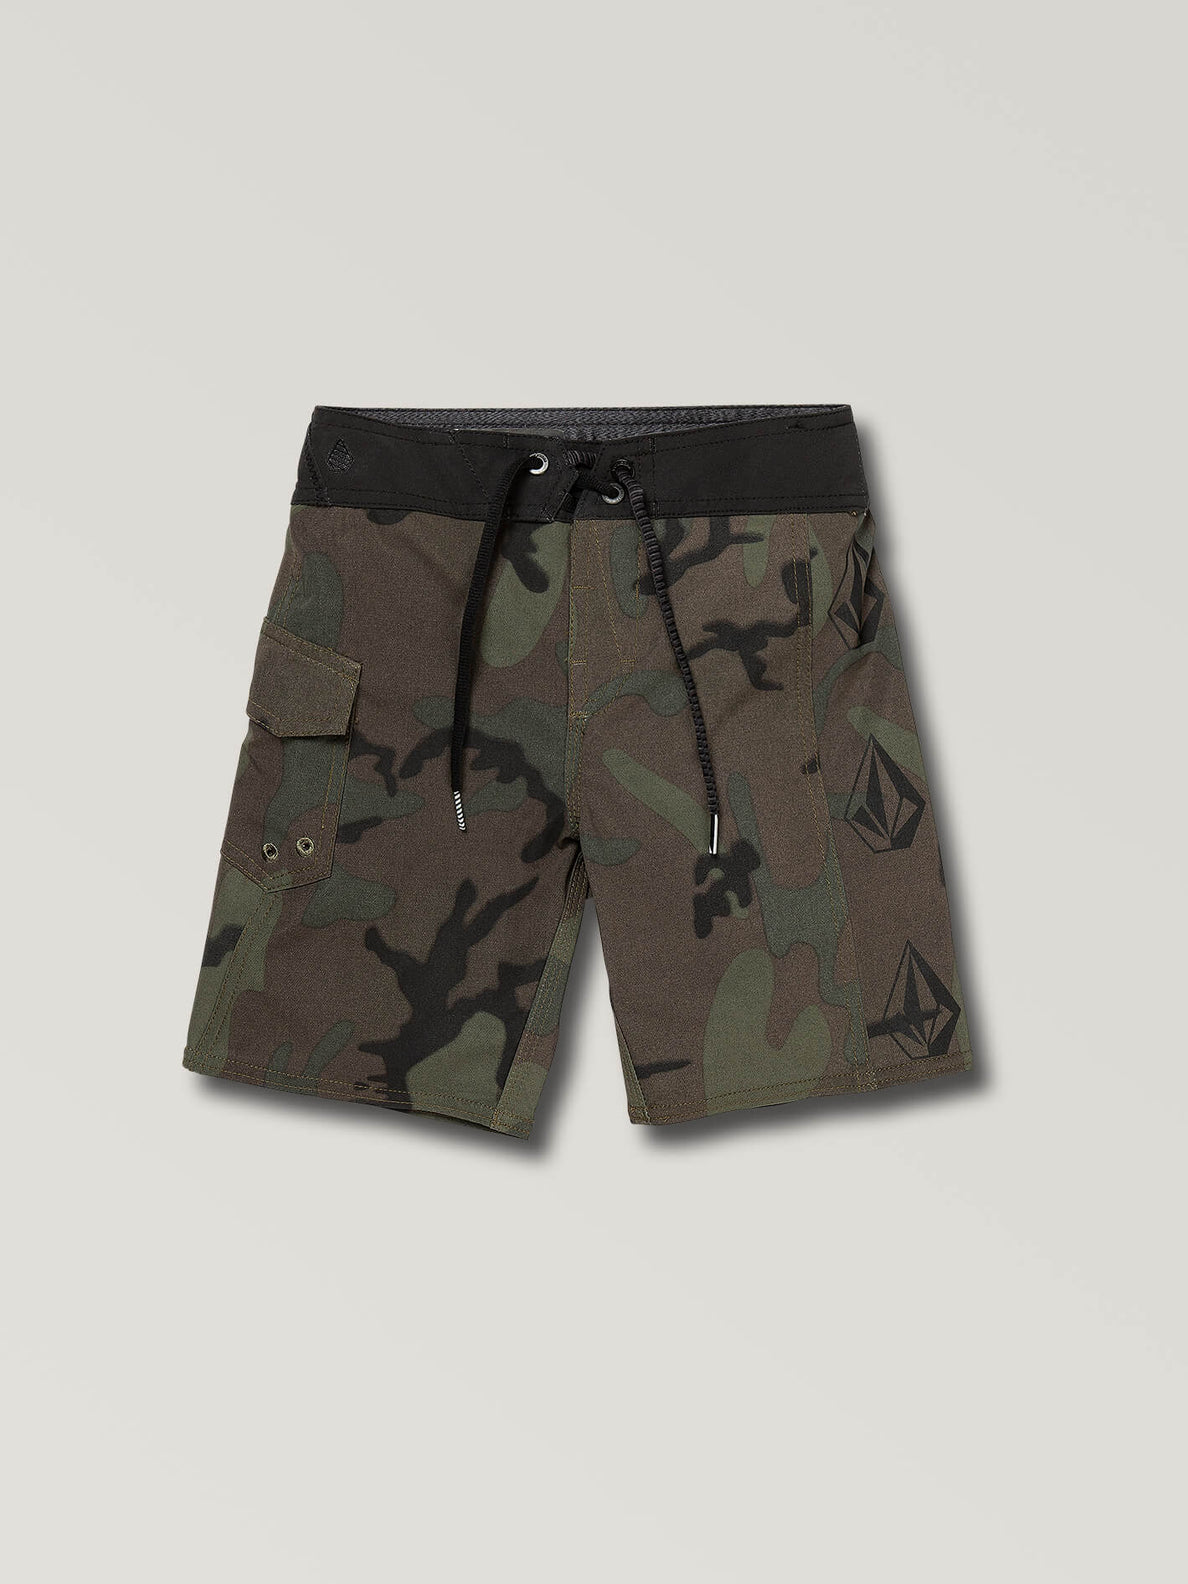 Little Boys Deadly Stones Mod Boardshorts In Camouflage, Front View